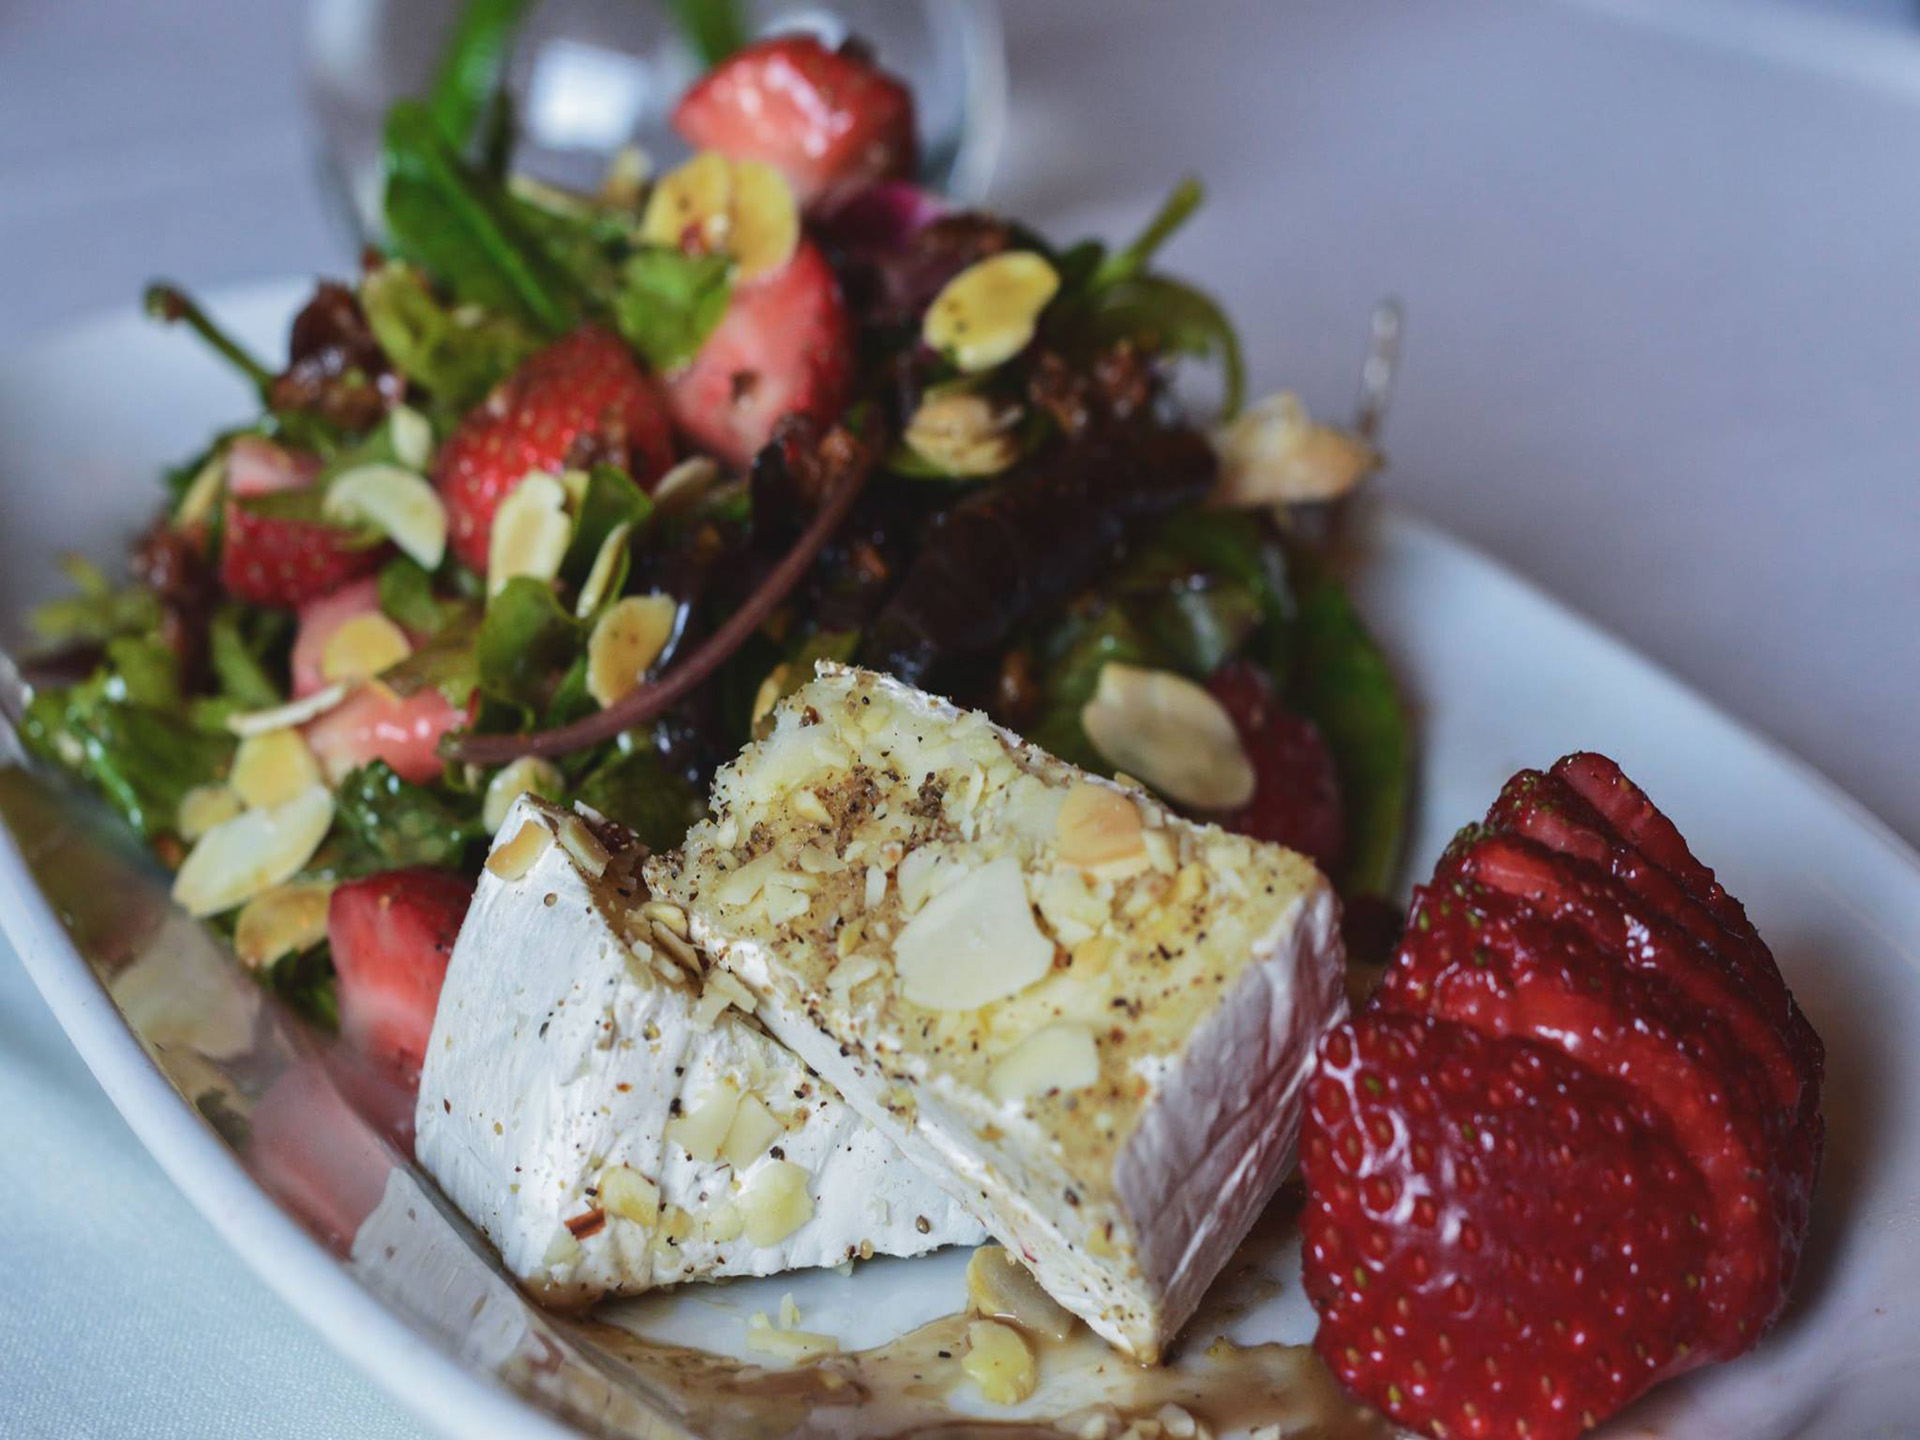 Brie, Strawberry and Almond Salad